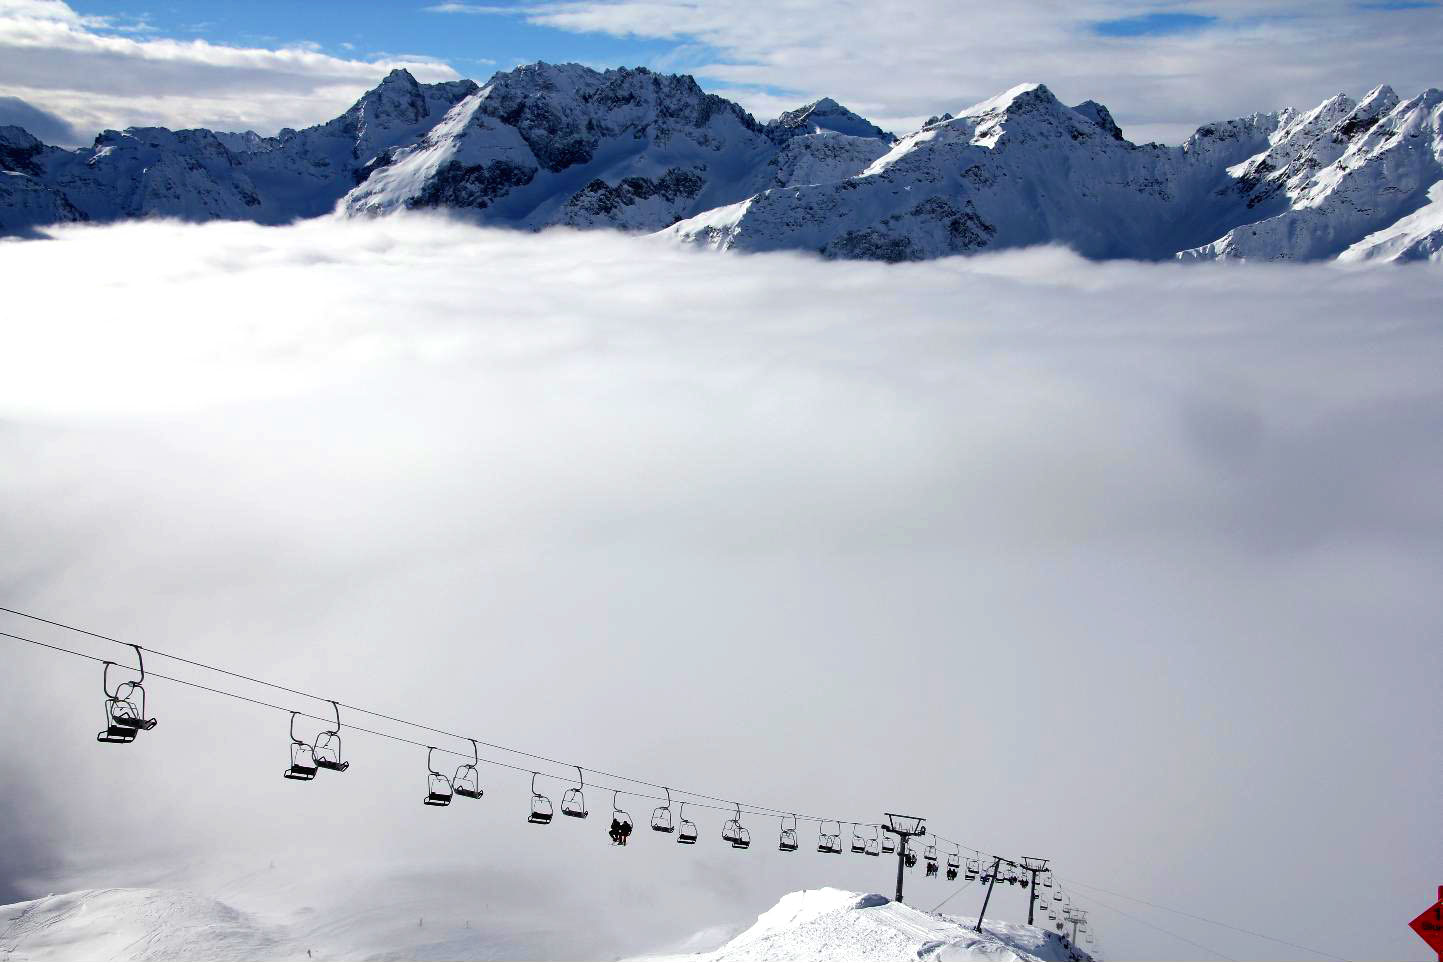 Chairlift above the clouds © JonoVernon-Powell